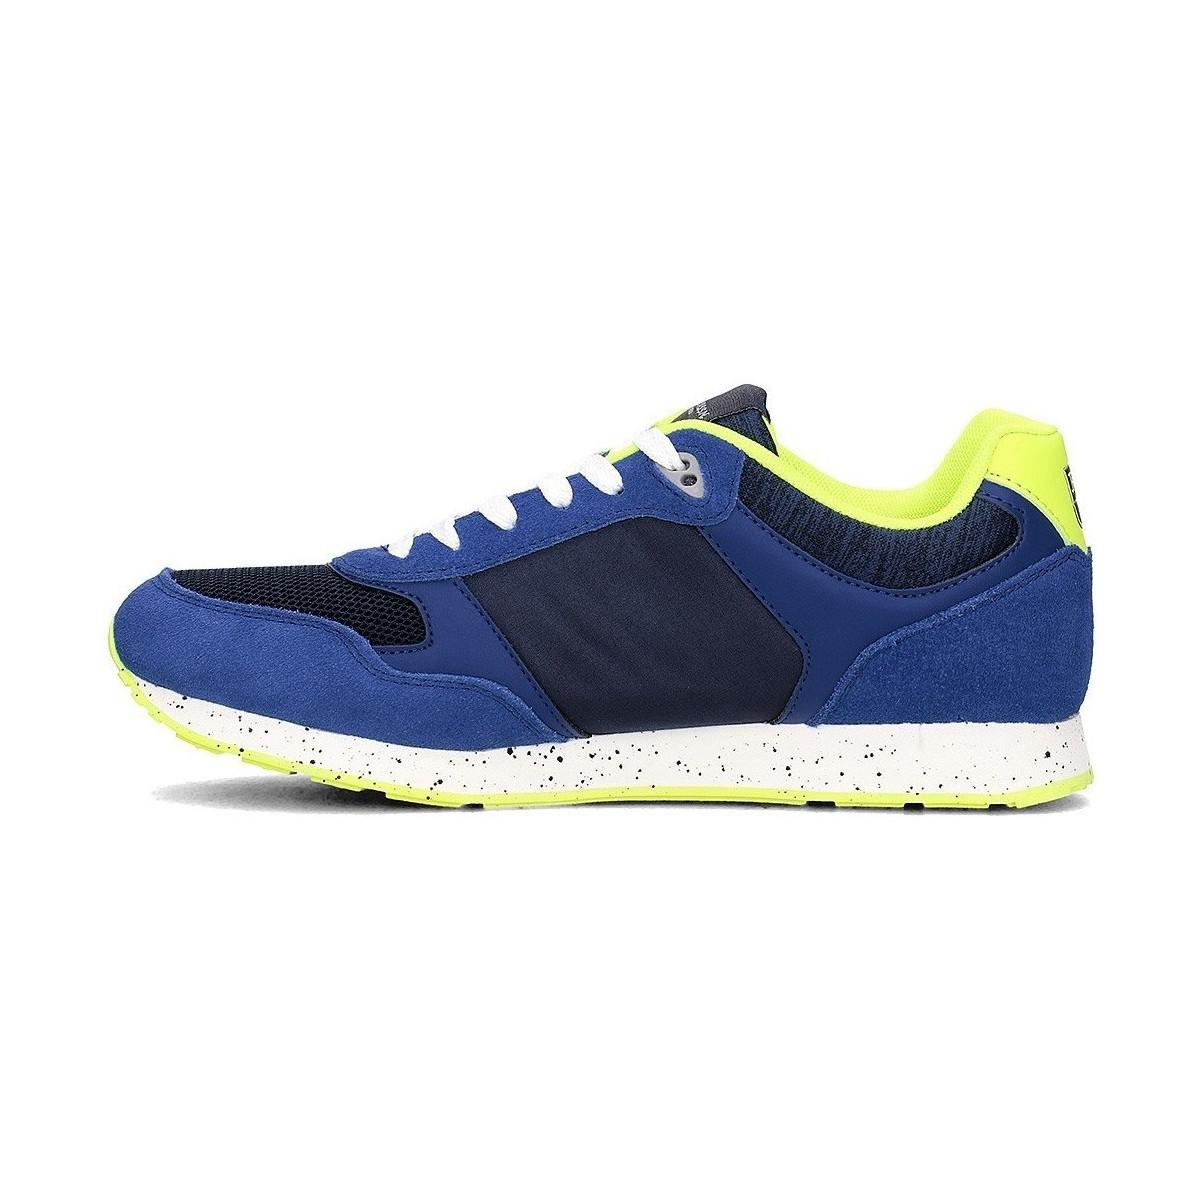 U.S. POLO ASSN. Flash4060s8lt1bluyel Men's Shoes (trainers) In Multicolour in Blue for Men